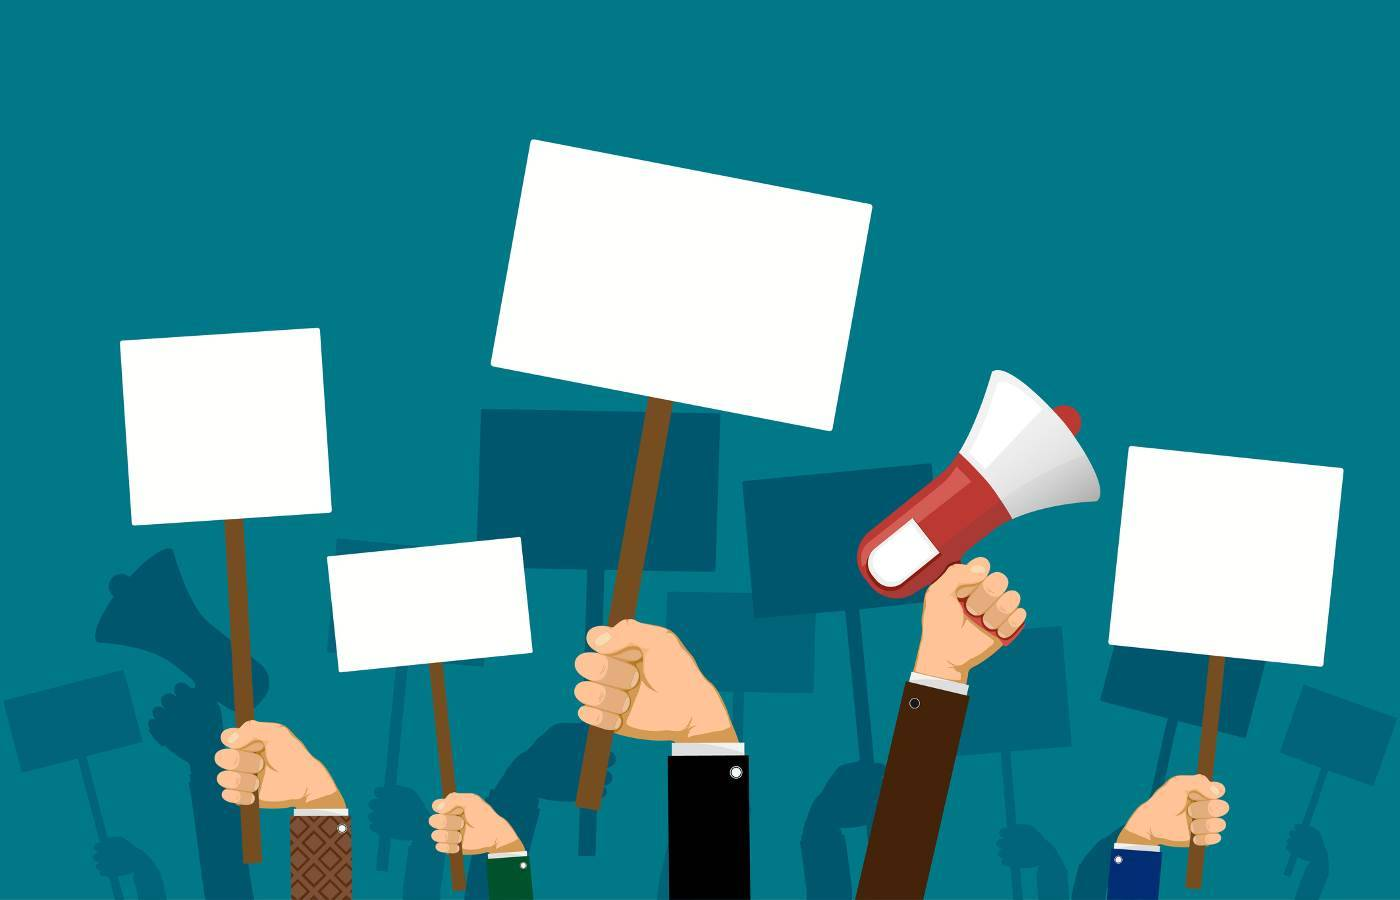 c99b7284fe Telstra could face worker strike after union members